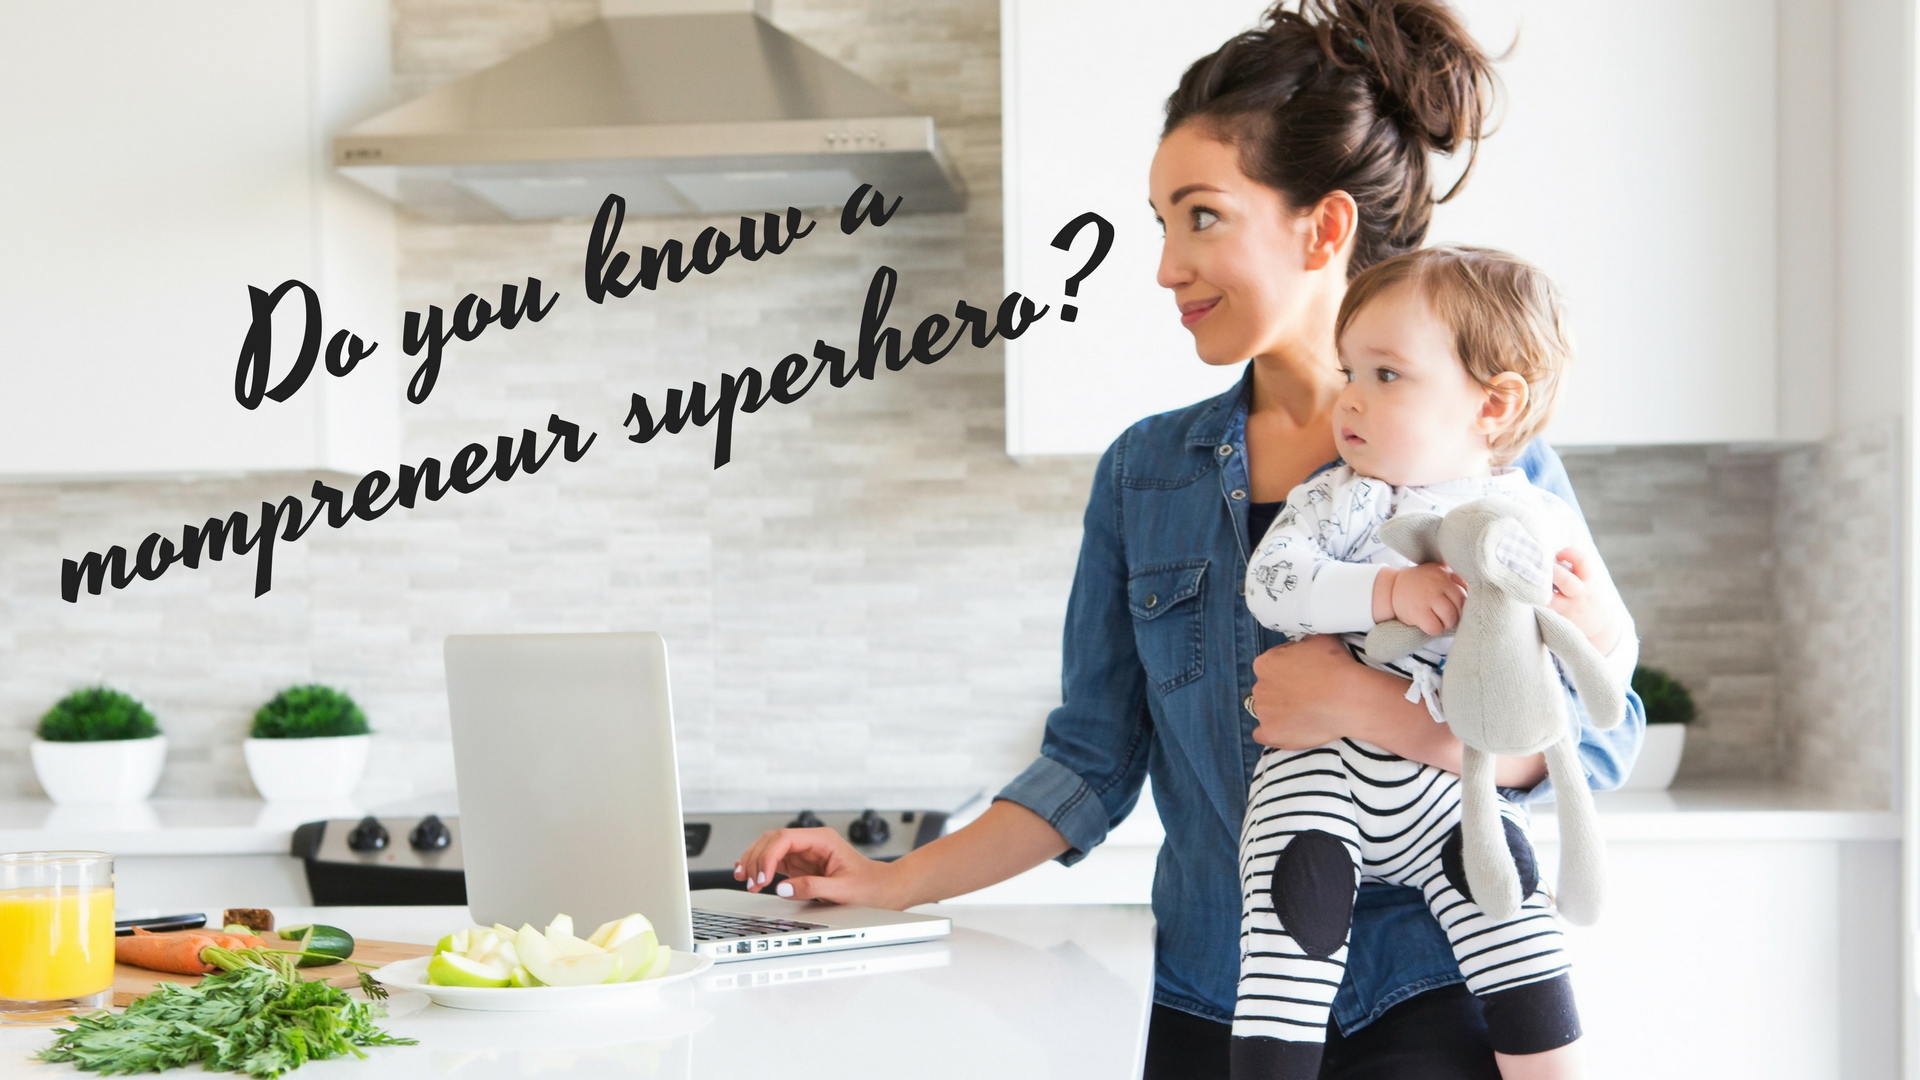 Do you know a mompreneur superhero? - @BloomLisa